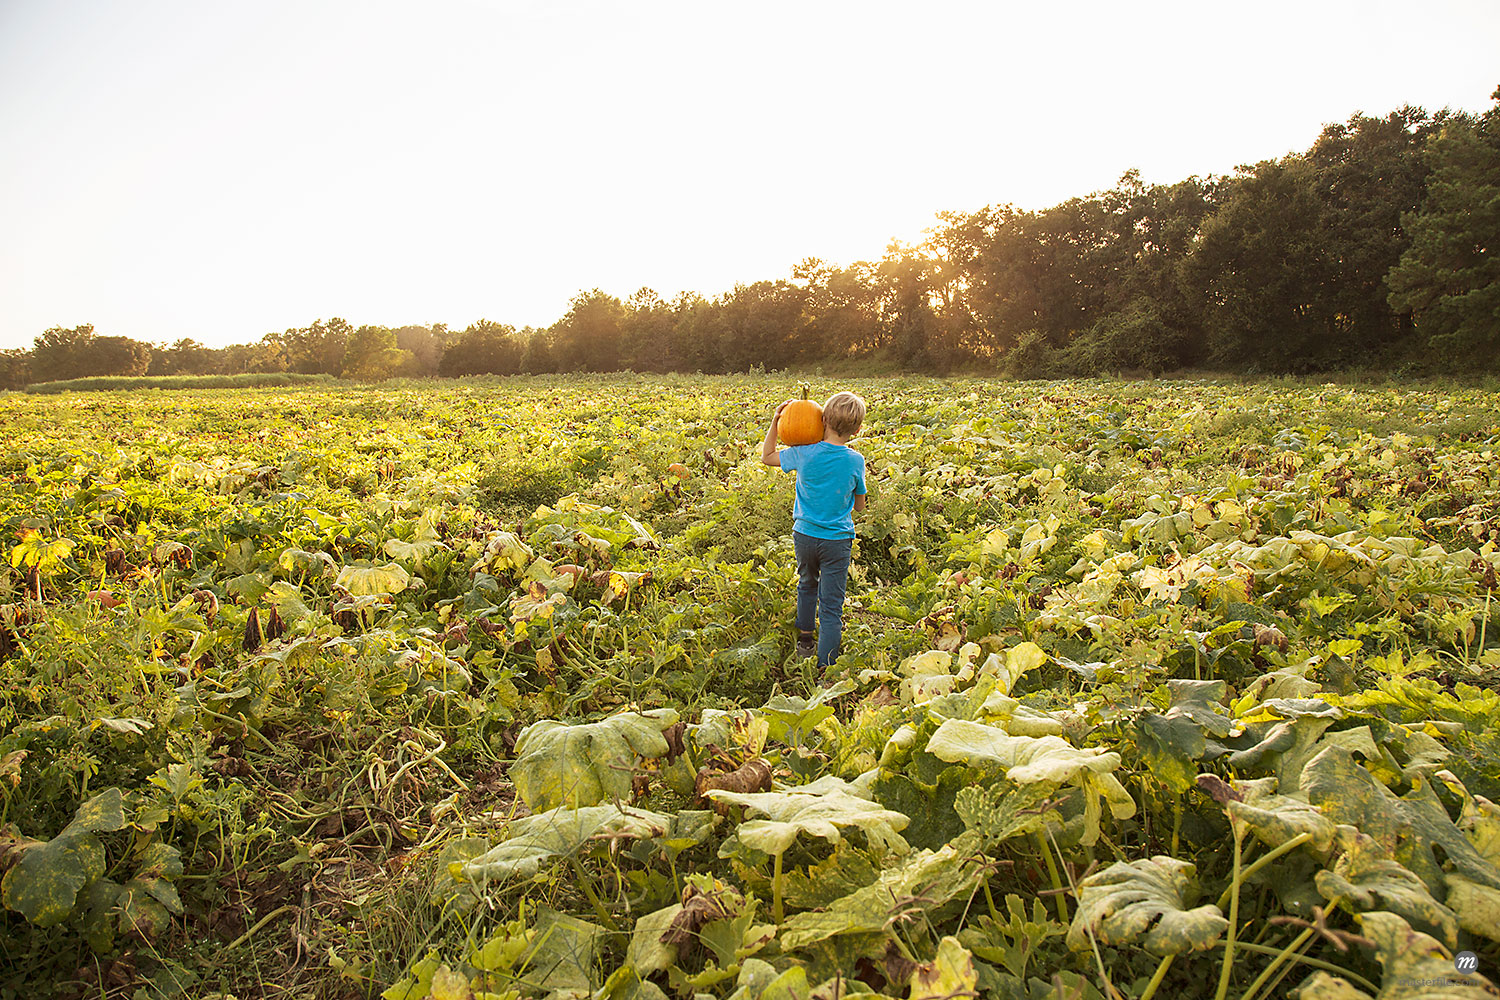 Young boy in pumpkin patch, carrying pumpkin, rear view  © Masterfile